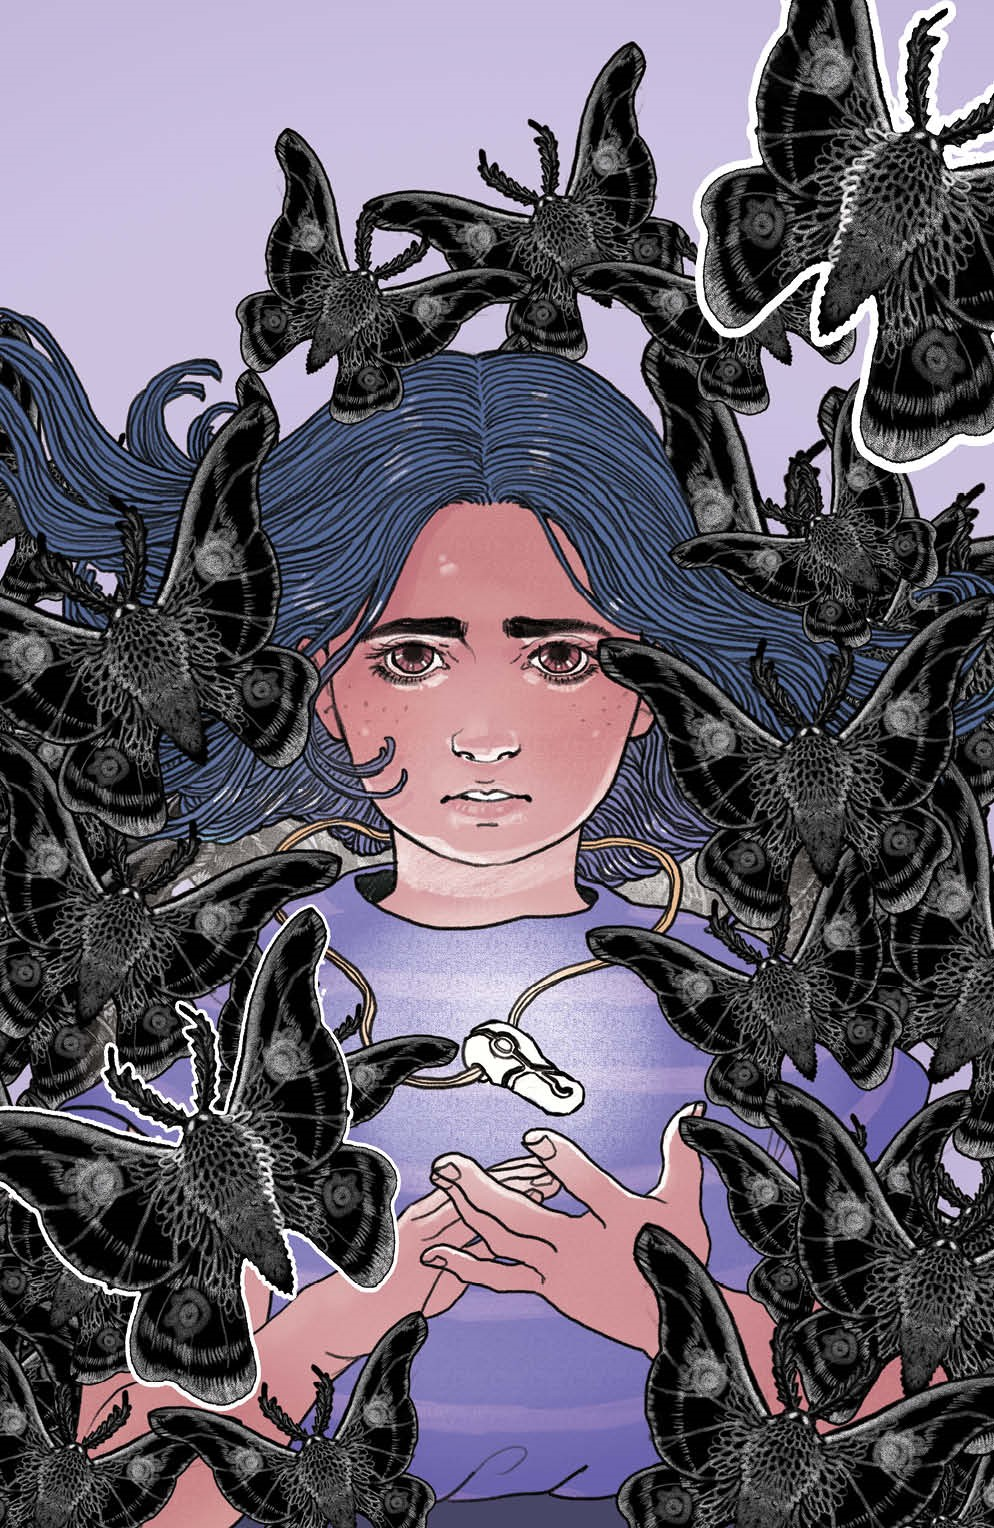 Mamo_002_Cover_B_Variant_Undressed ComicList: BOOM! Studios New Releases for 08/11/2021